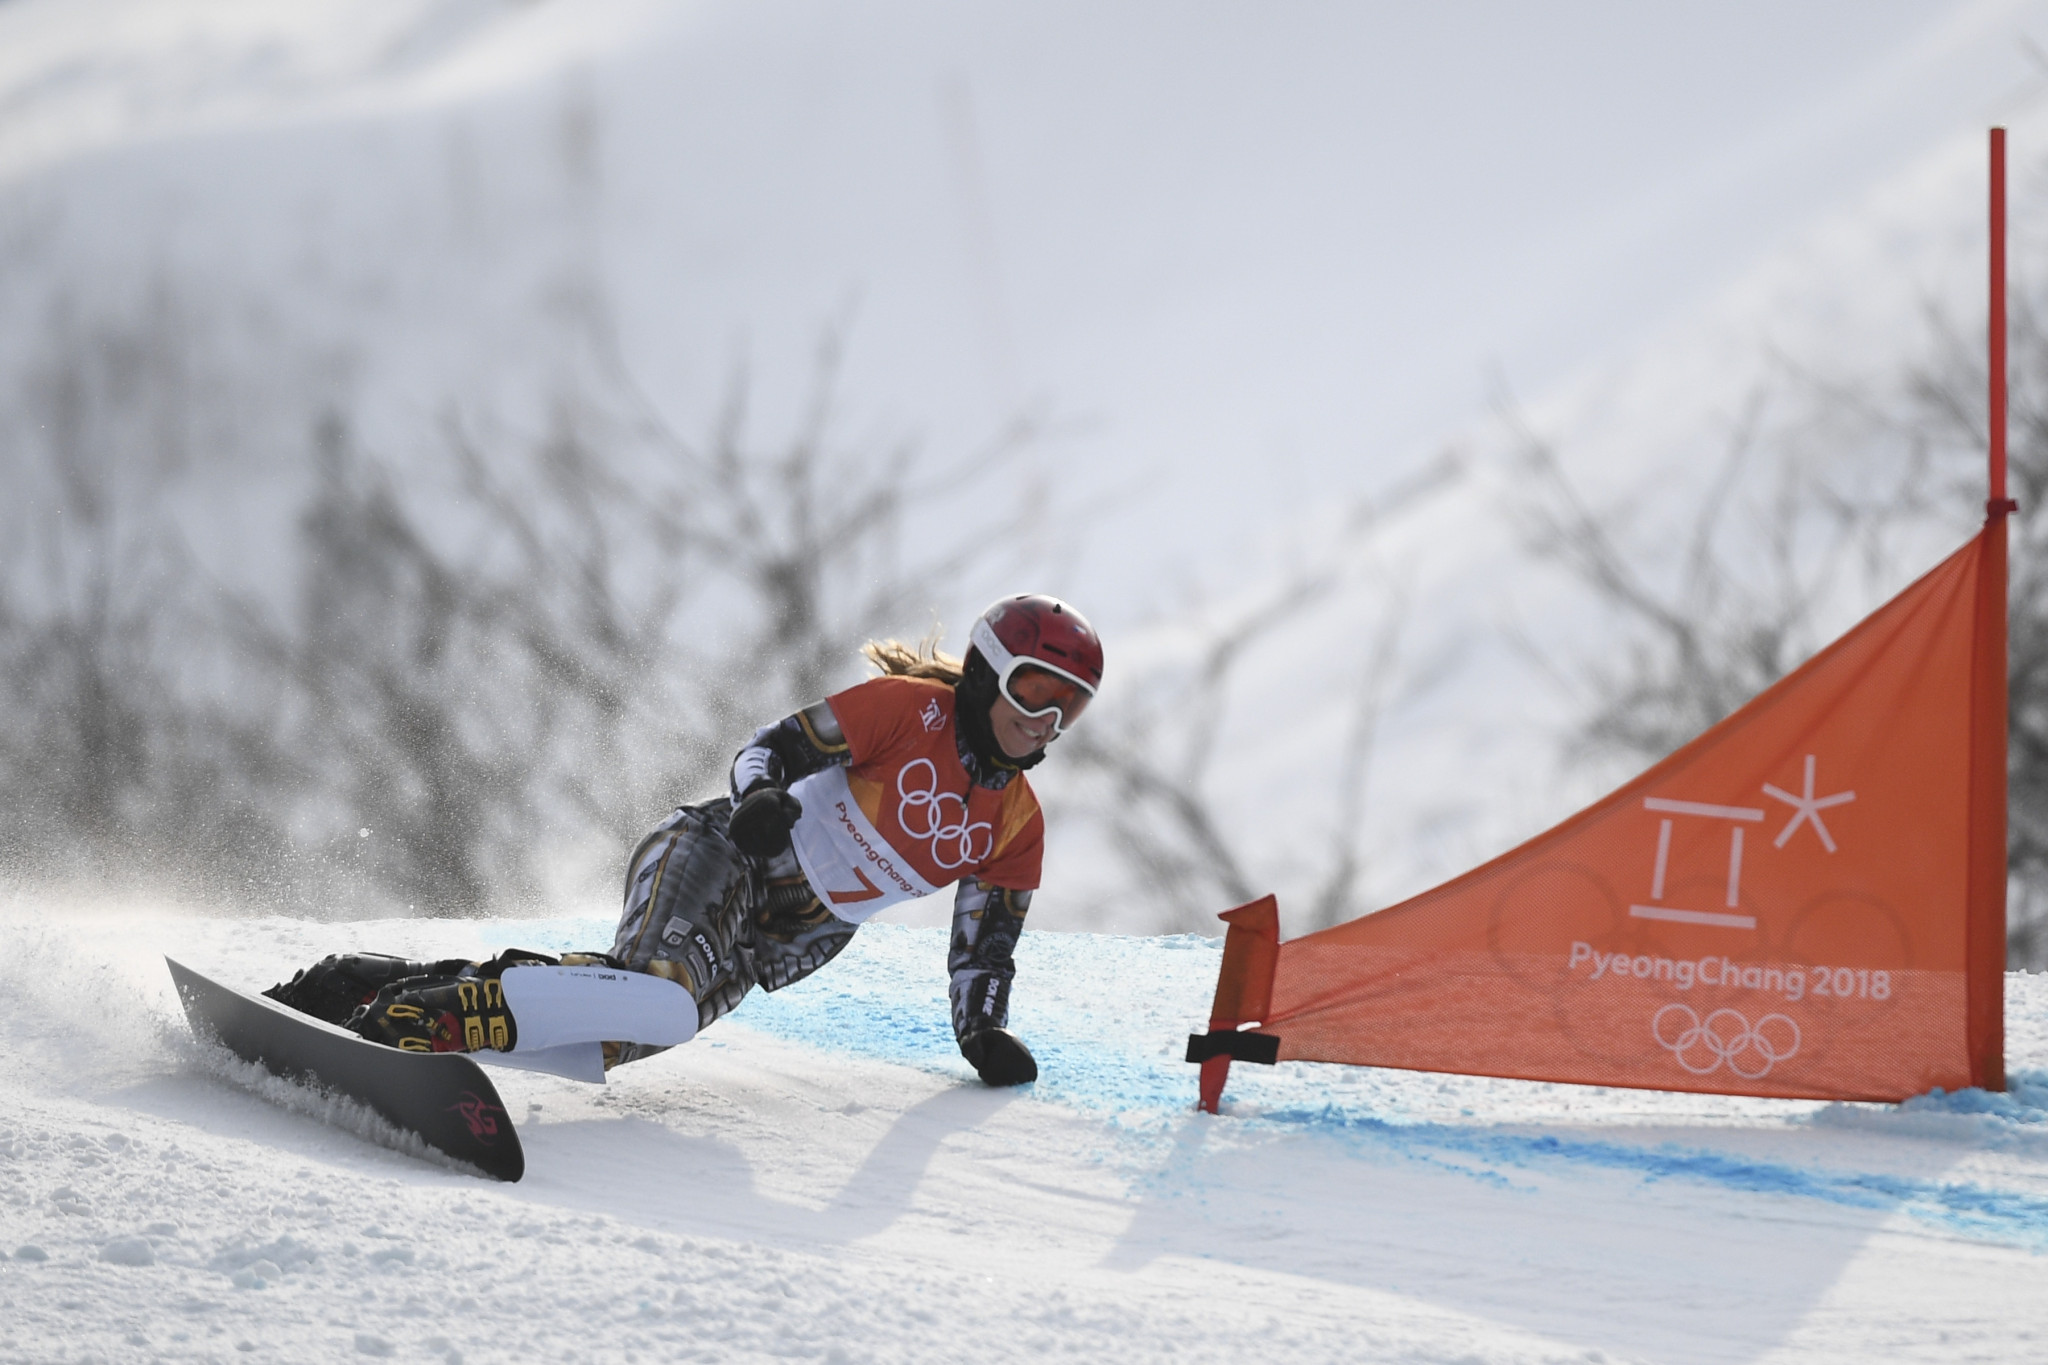 Ledecka's record means minor places only up for grabs at FIS Snowboard World Cup in Scuol